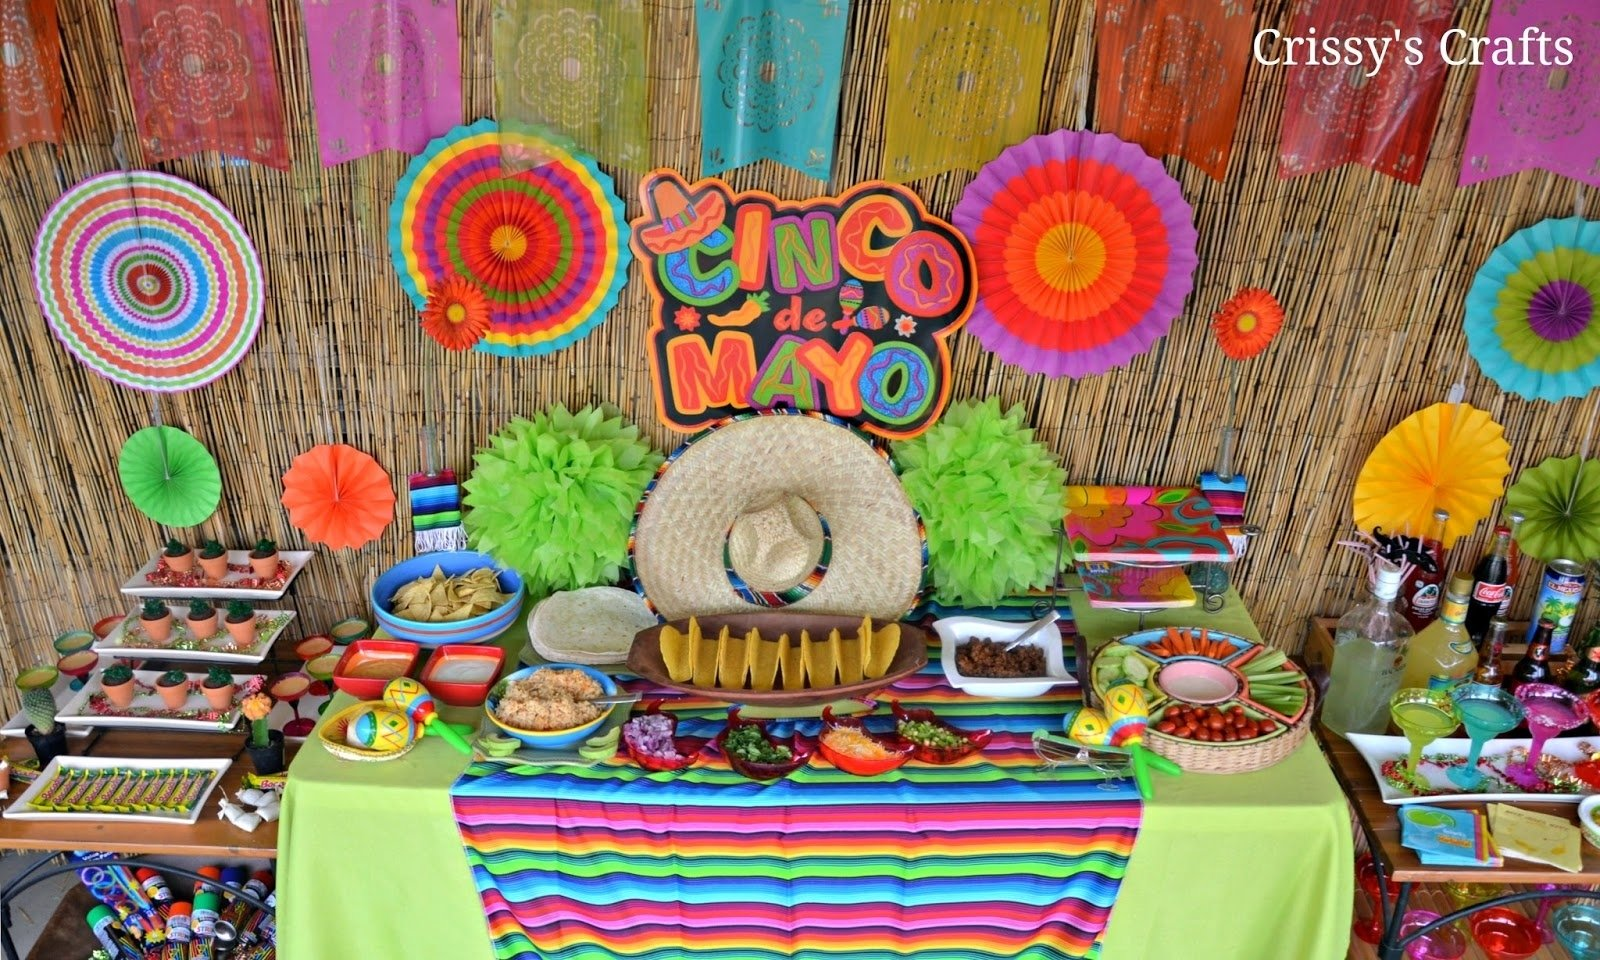 10 Great 5 De Mayo Party Ideas crissys crafts fiesta party cinco de mayo 1 2021